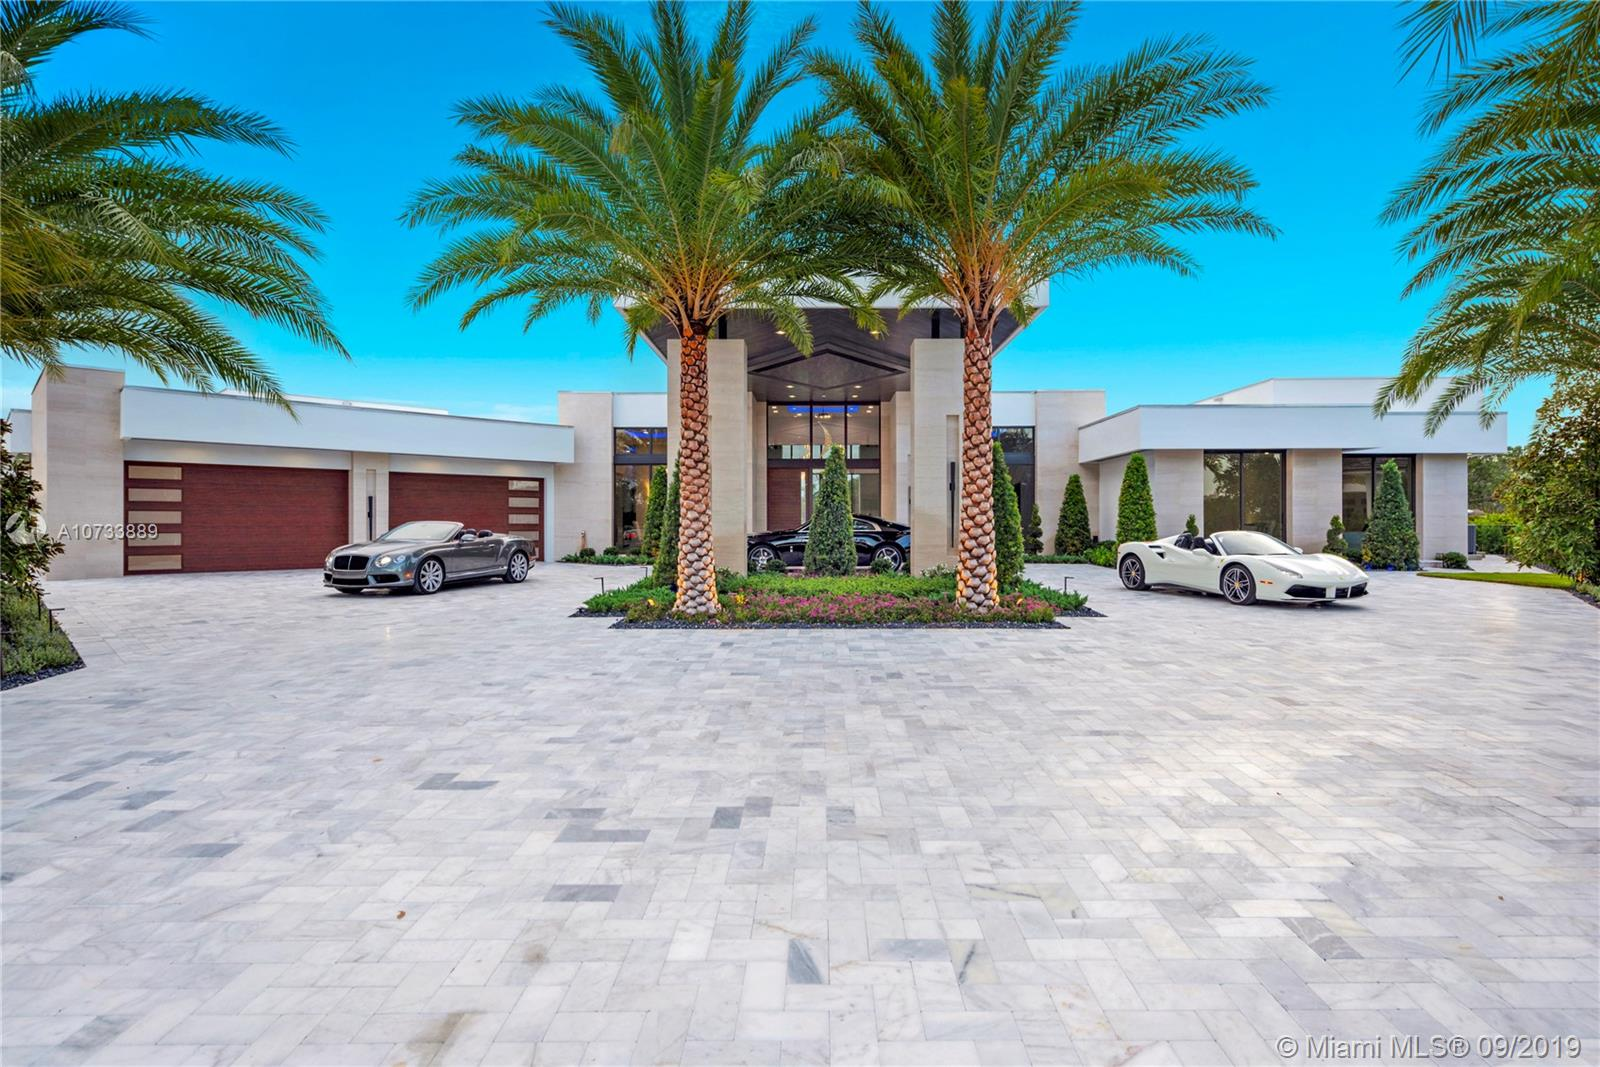 "One of a kind designer home located in the newest & most exclusive gated community in Fort Lauderdale; The Enclave at Coral Ridge Country Club -  6 Bedroom | 6.5 Bathroom | 5 Car A/C Garage |Plus a Media/Club room | 10,629 SQFT Covered | 26,580 sqft over sized corner lot. Come home to your glass showroom garage or enter under your towering Porte Cochere. Sprawling master suite with attached bonus room and breathtaking spa inspired bathroom with 19' ceilings. Resort style pool, summer kitchen and 20' water curtain transforms your outdoor space into a tropical oasis. Other features include; 12' glass sliding doors, 2300 Sqft. covered patio area, smart home by ""Savant Pro"" home automation, Master Chef kitchen with 15' island, 3 fireplaces, 500 bottle glass wine storage, plus much more"